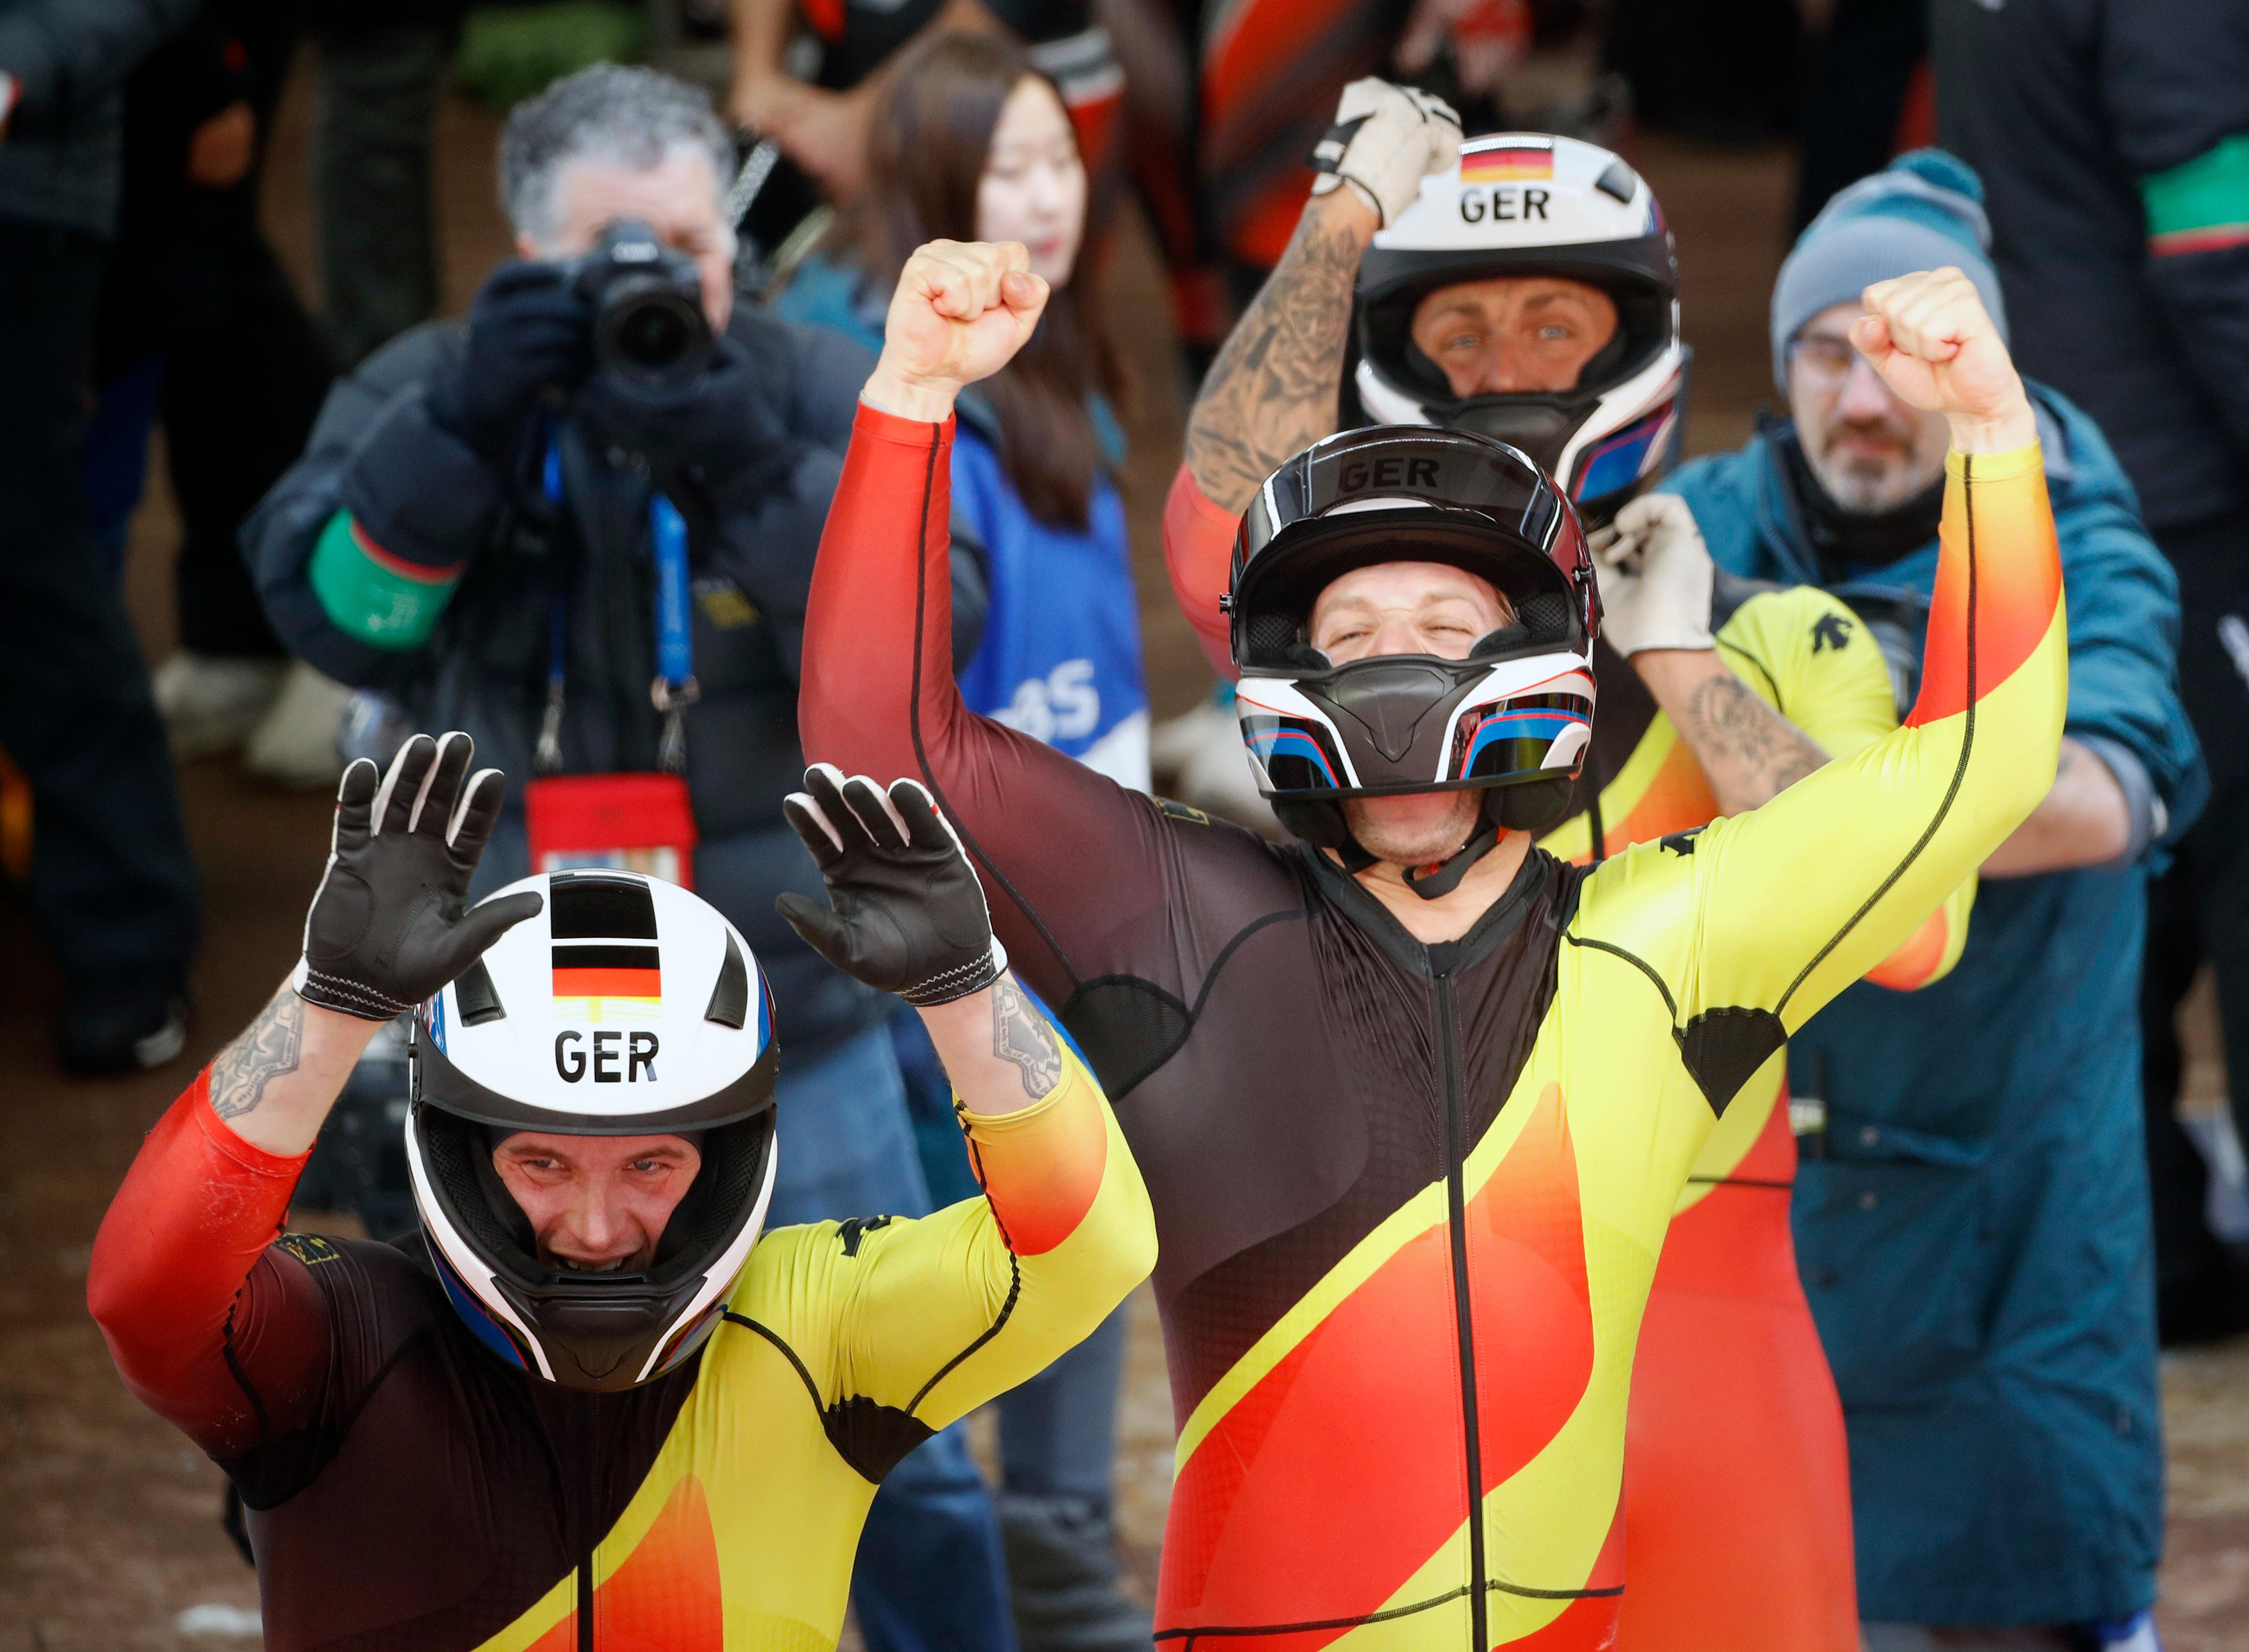 Driver Nico Walther, Kevin Kuske, Alexander Roediger and Eric Franke of Germany celebrate after tying for the silver medal during the four-man bobsled competition final at the 2018 Winter Olympics in Pyeongchang, South Korea, Sunday, Feb. 25, 2018. (AP Photo/Charlie Riedel)